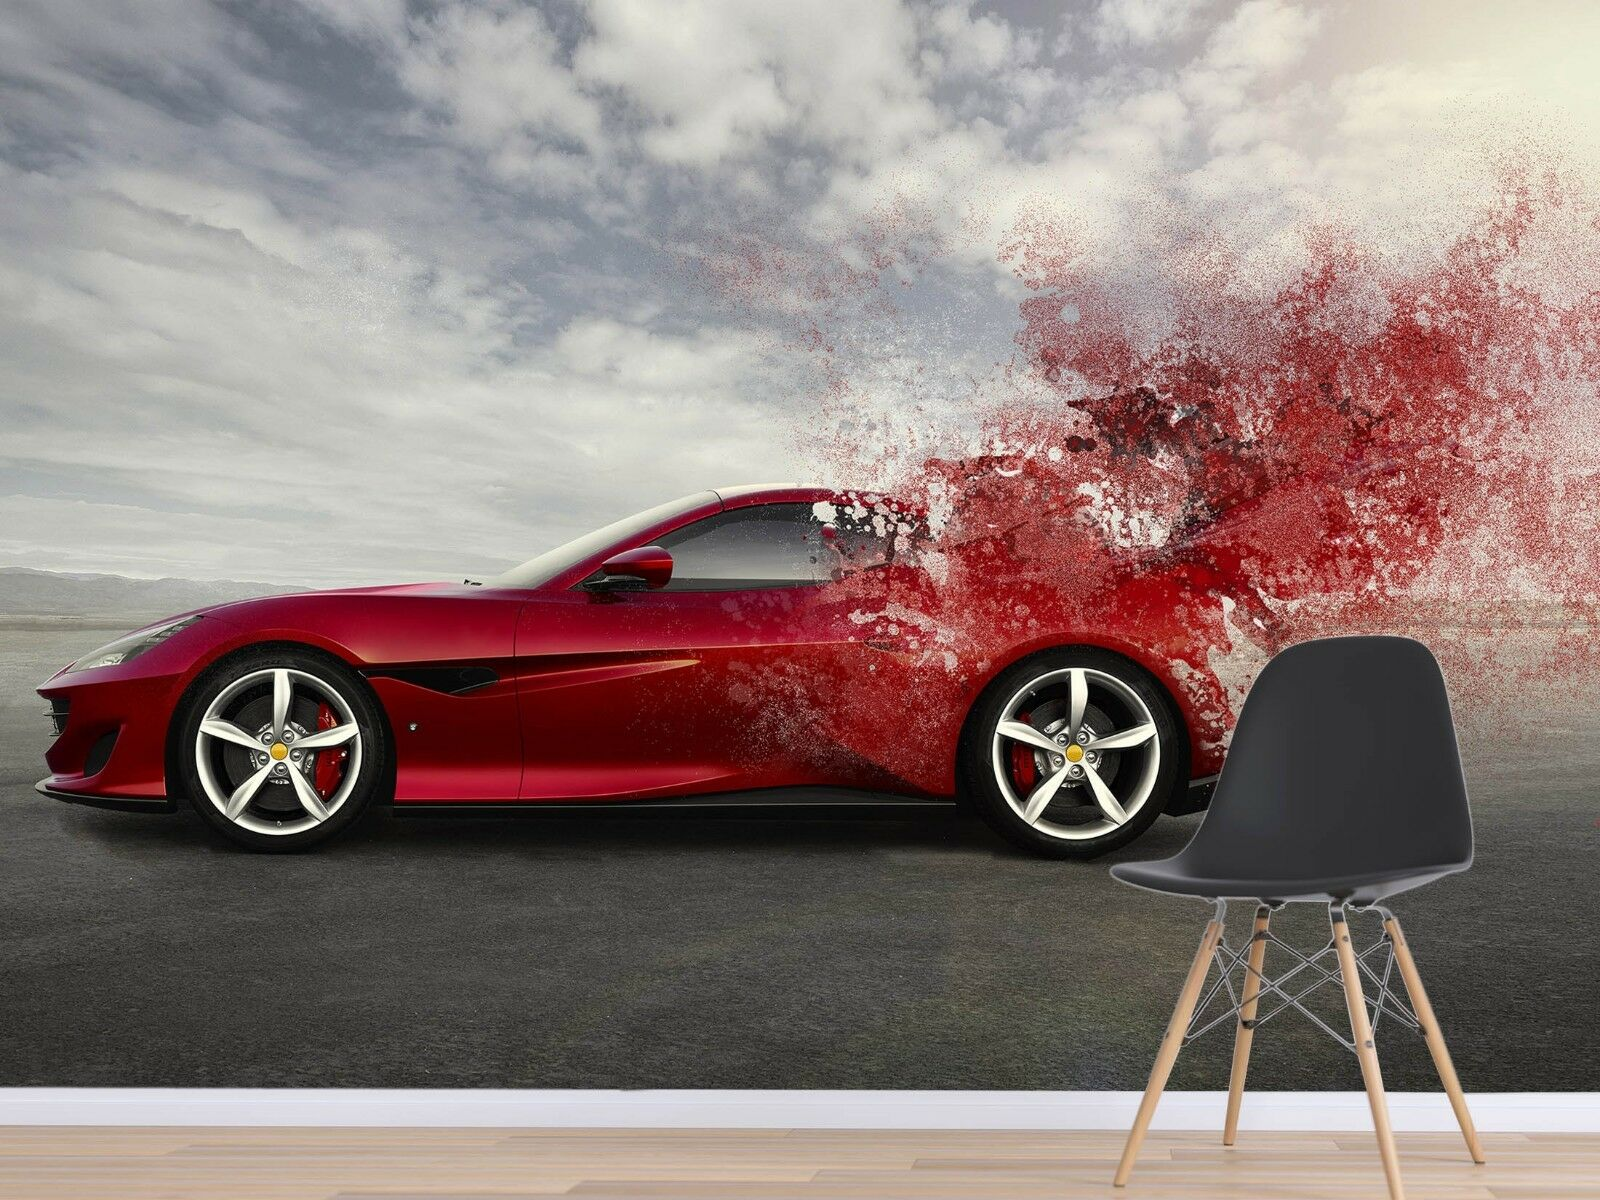 3d rouge voiture 967 Wallpaper Mural Wallpaper Wallpaper Picture Family de Sidney